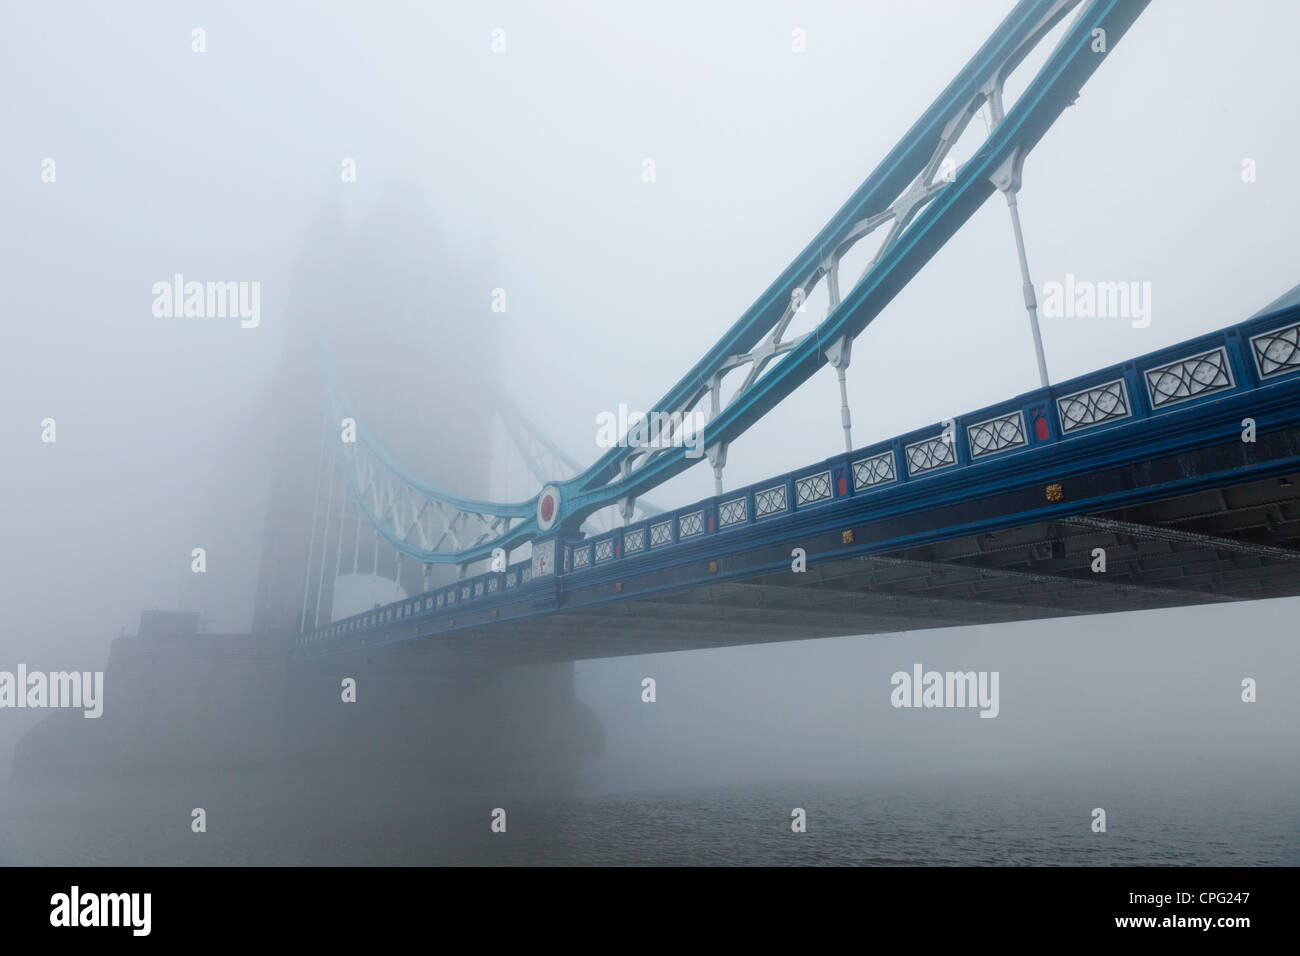 England, London, Southwark, Tower Bridge and River Thames in the Fog - Stock Image